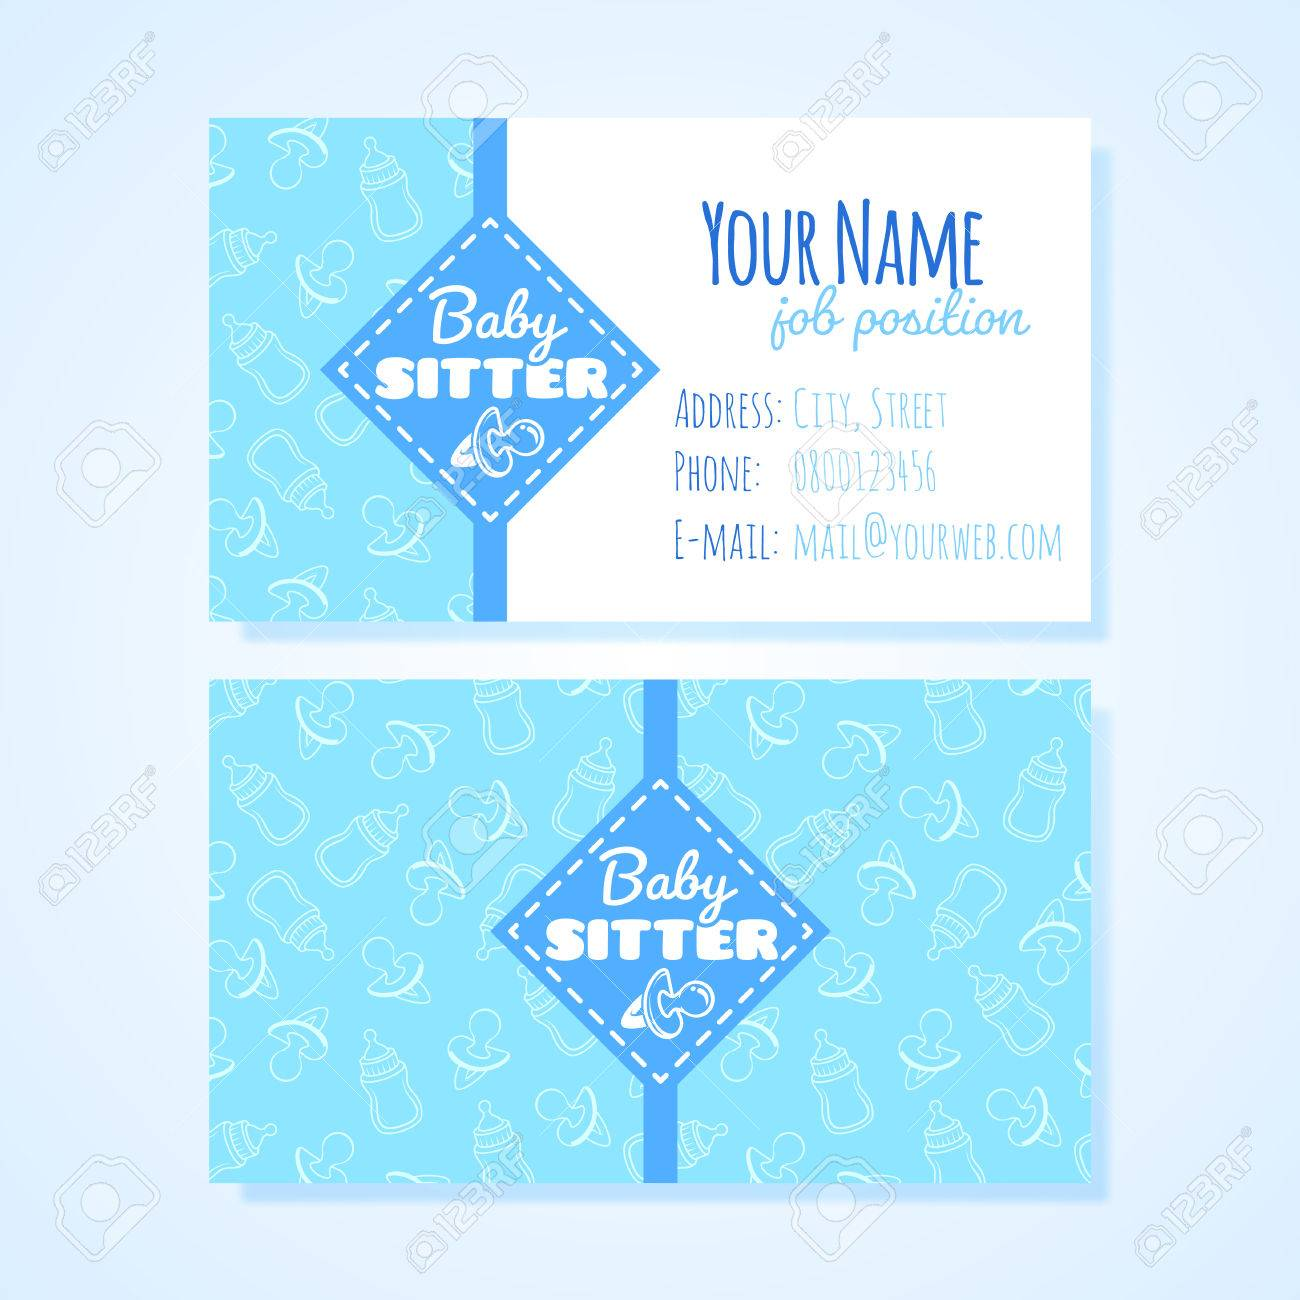 Latex business card gallery free business cards babysitter business card image collections free business cards business cards for babysitting choice image free business magicingreecefo Gallery